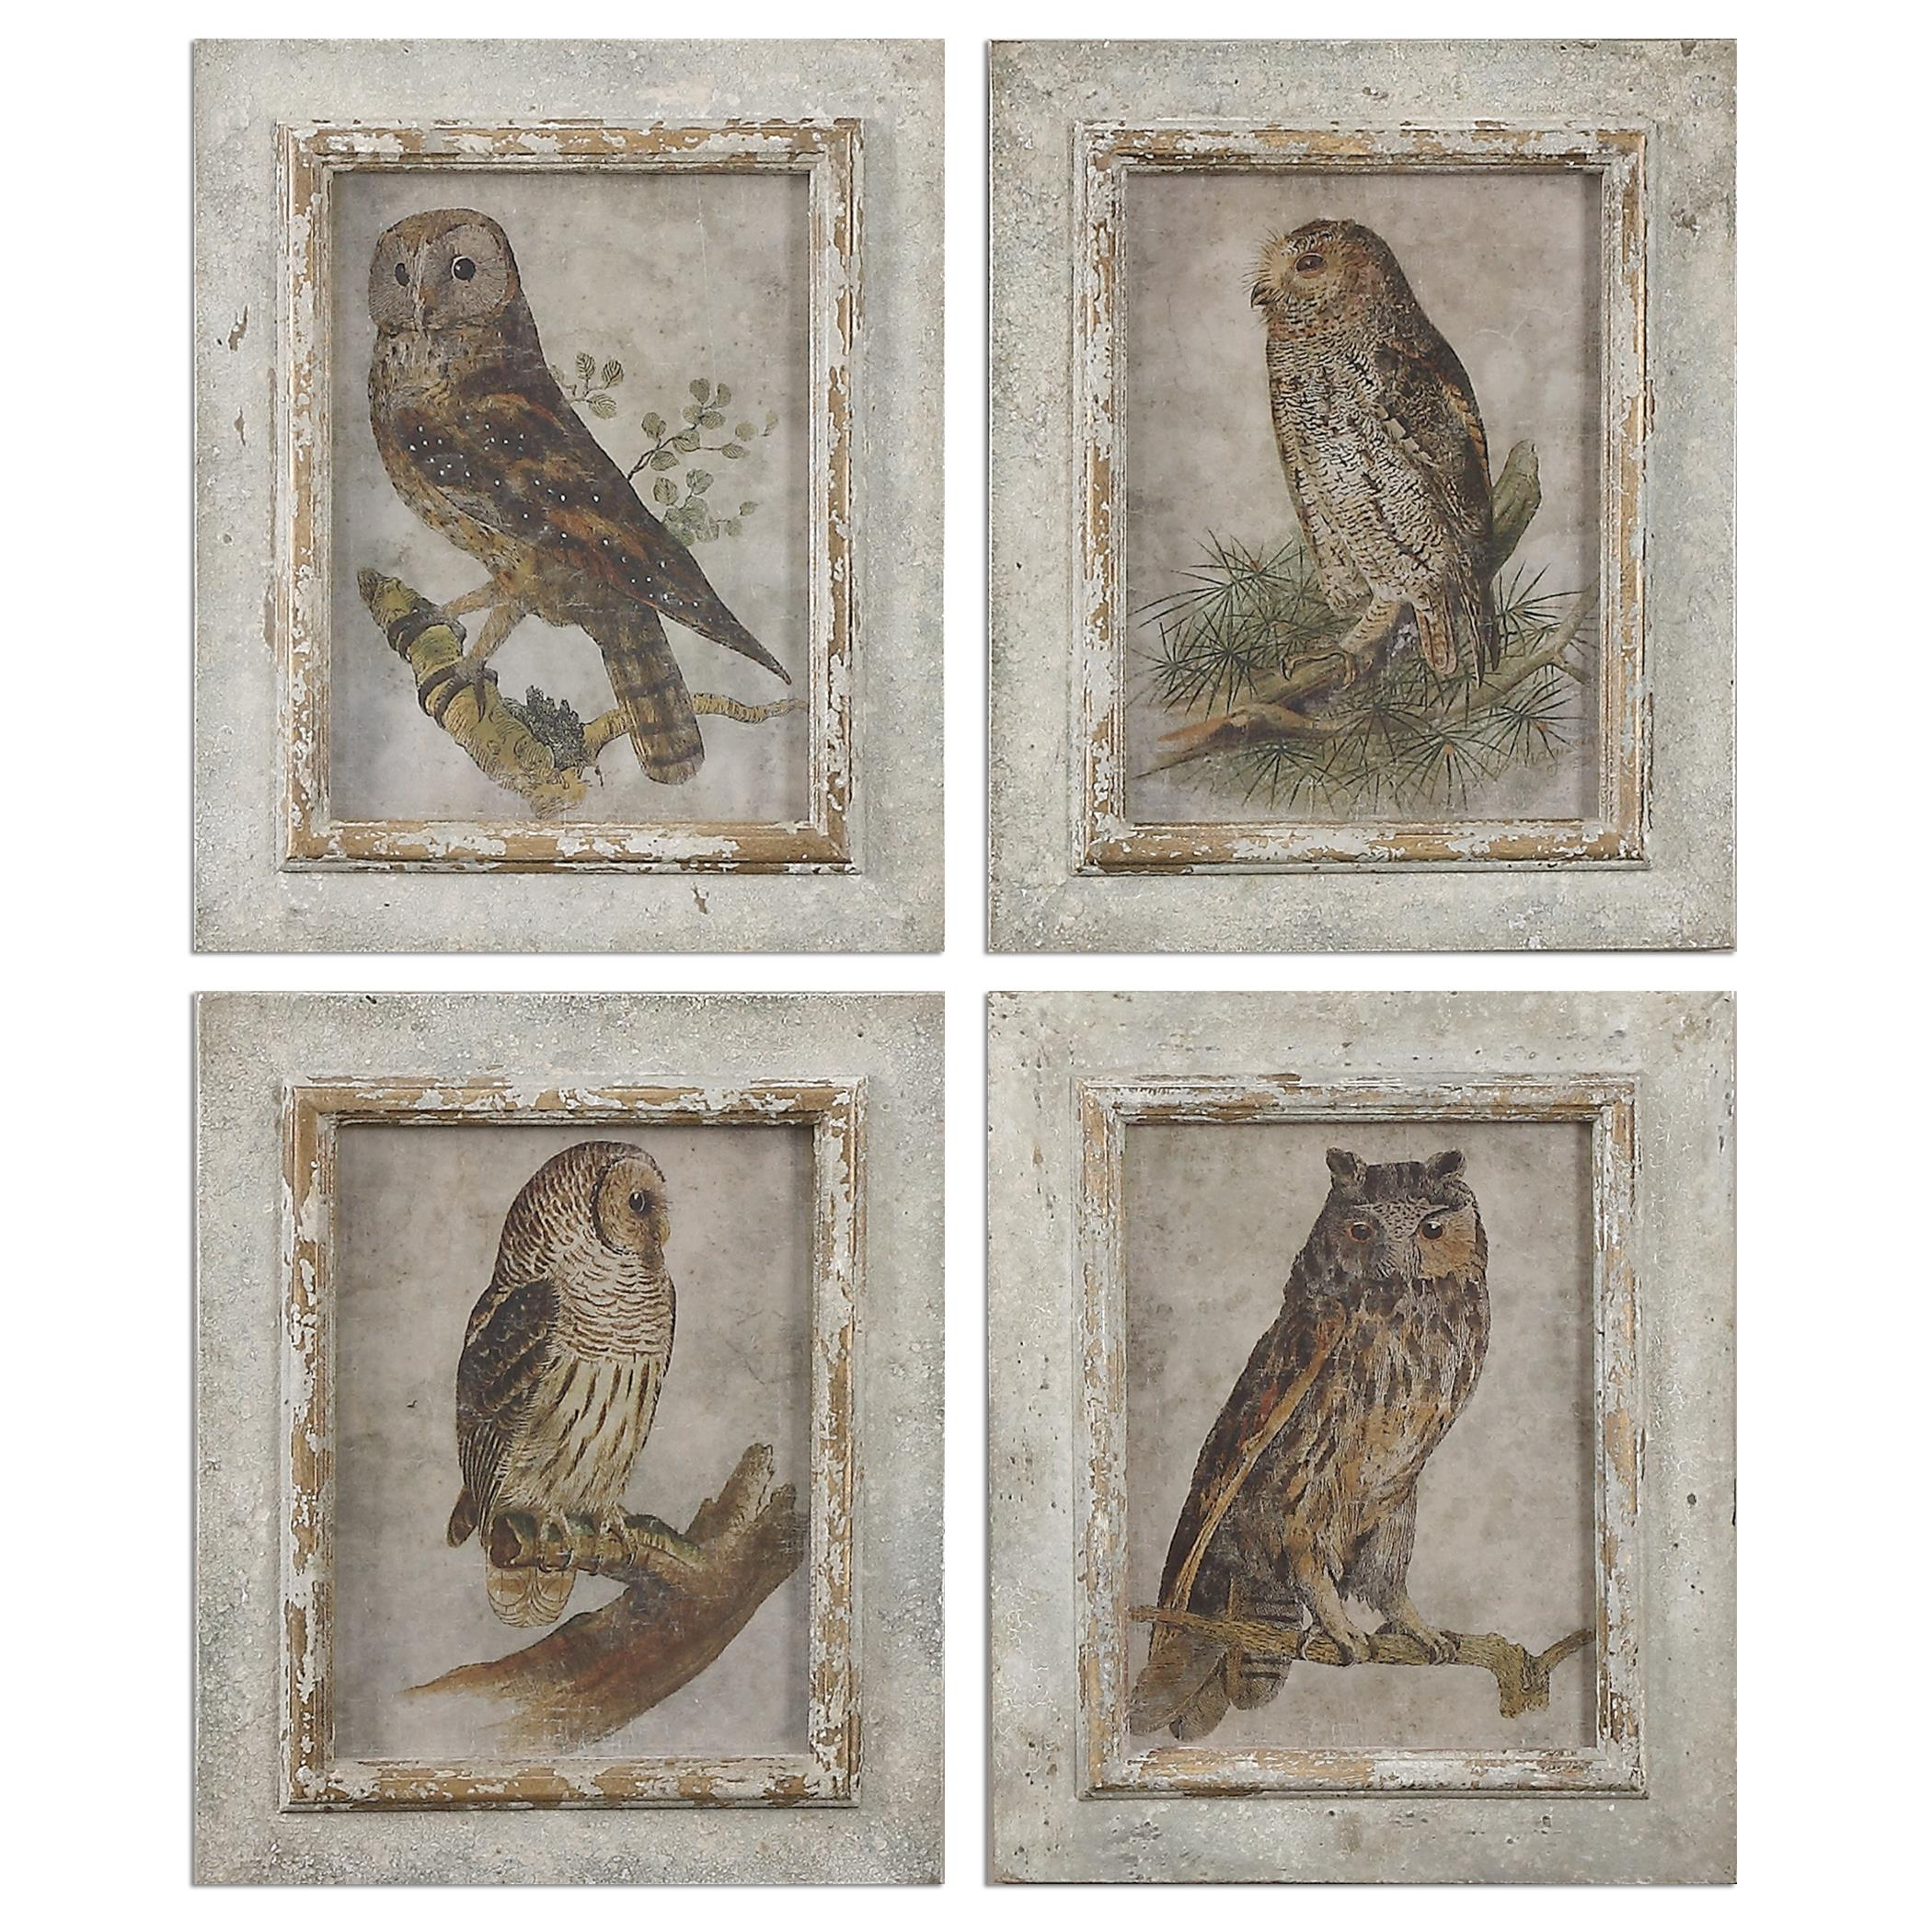 Uttermost Art Owls Framed Art, S/4 - Item Number: 56061